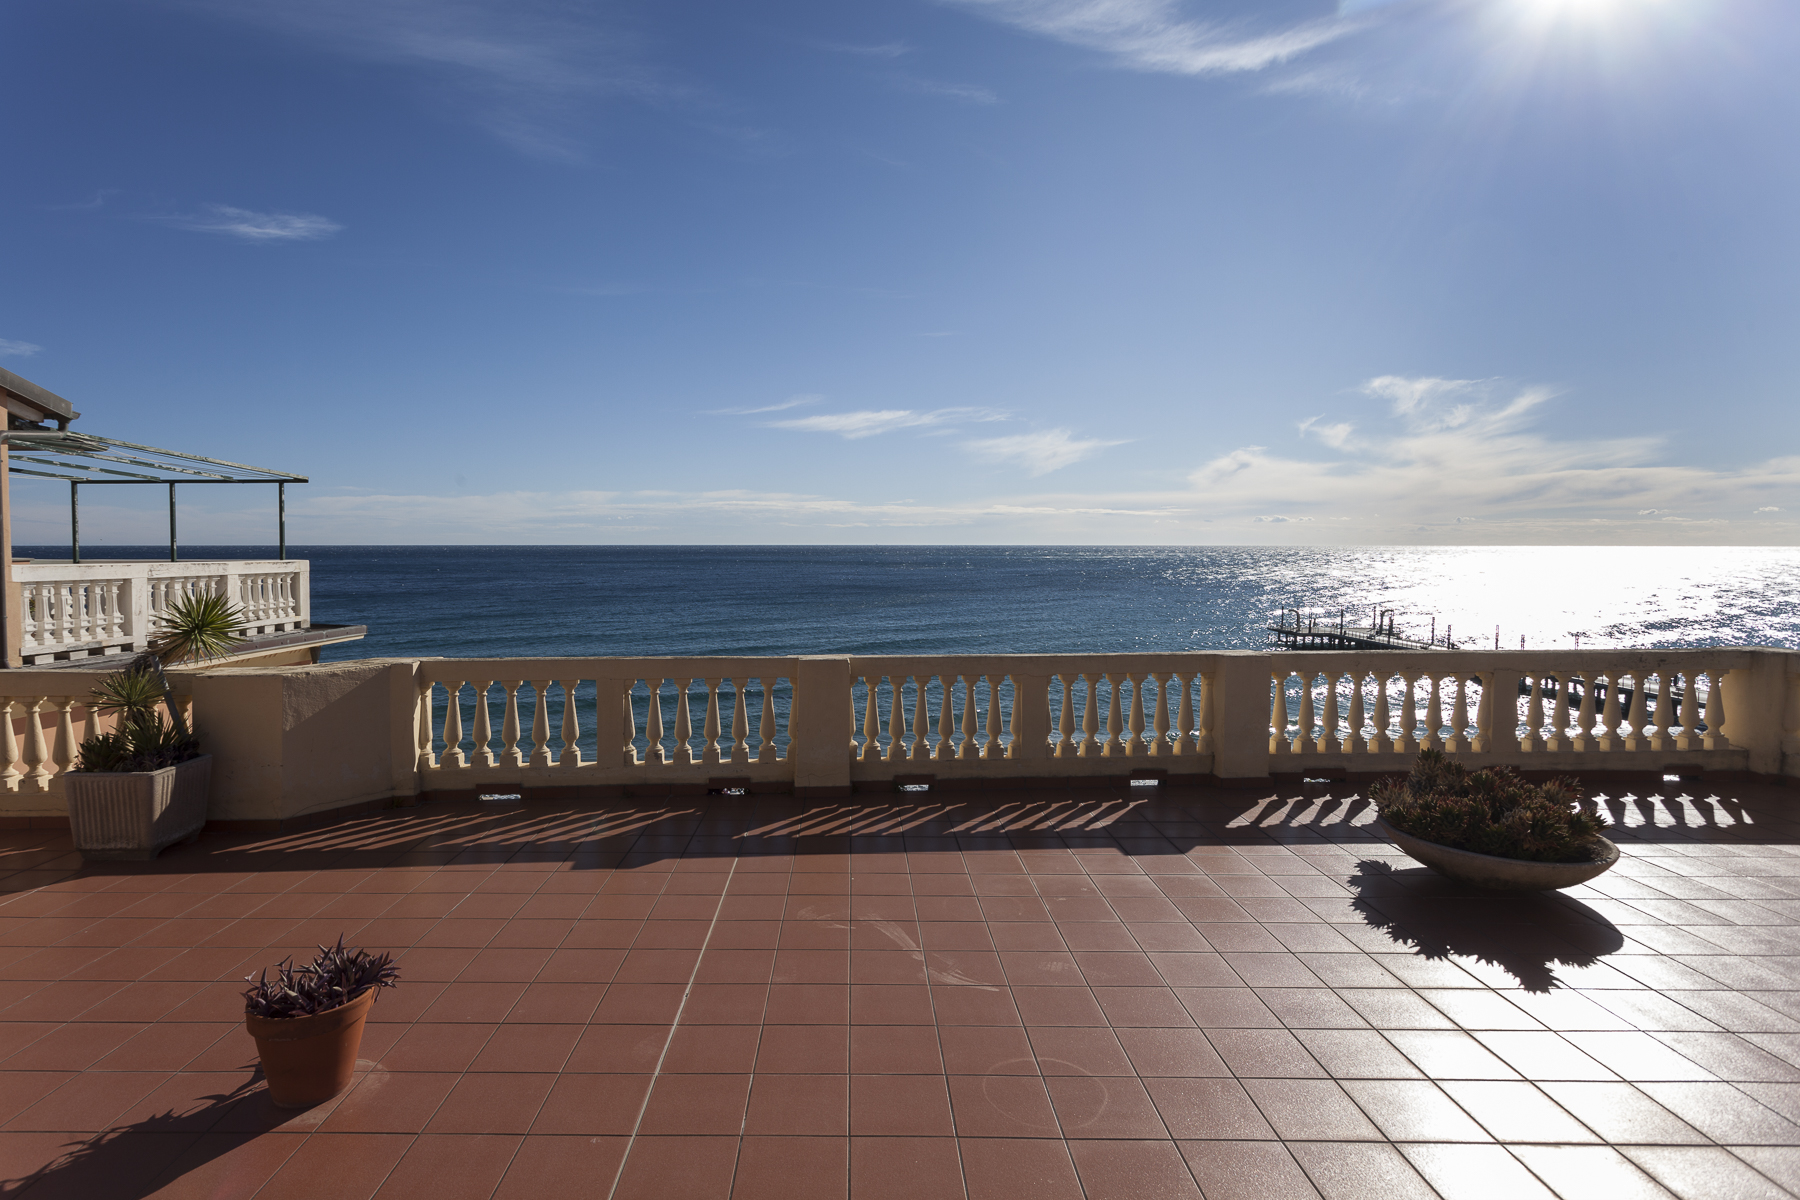 شقة للـ Sale في Magnificent seafront apartment in Alassio Alassio, Savona, Italy